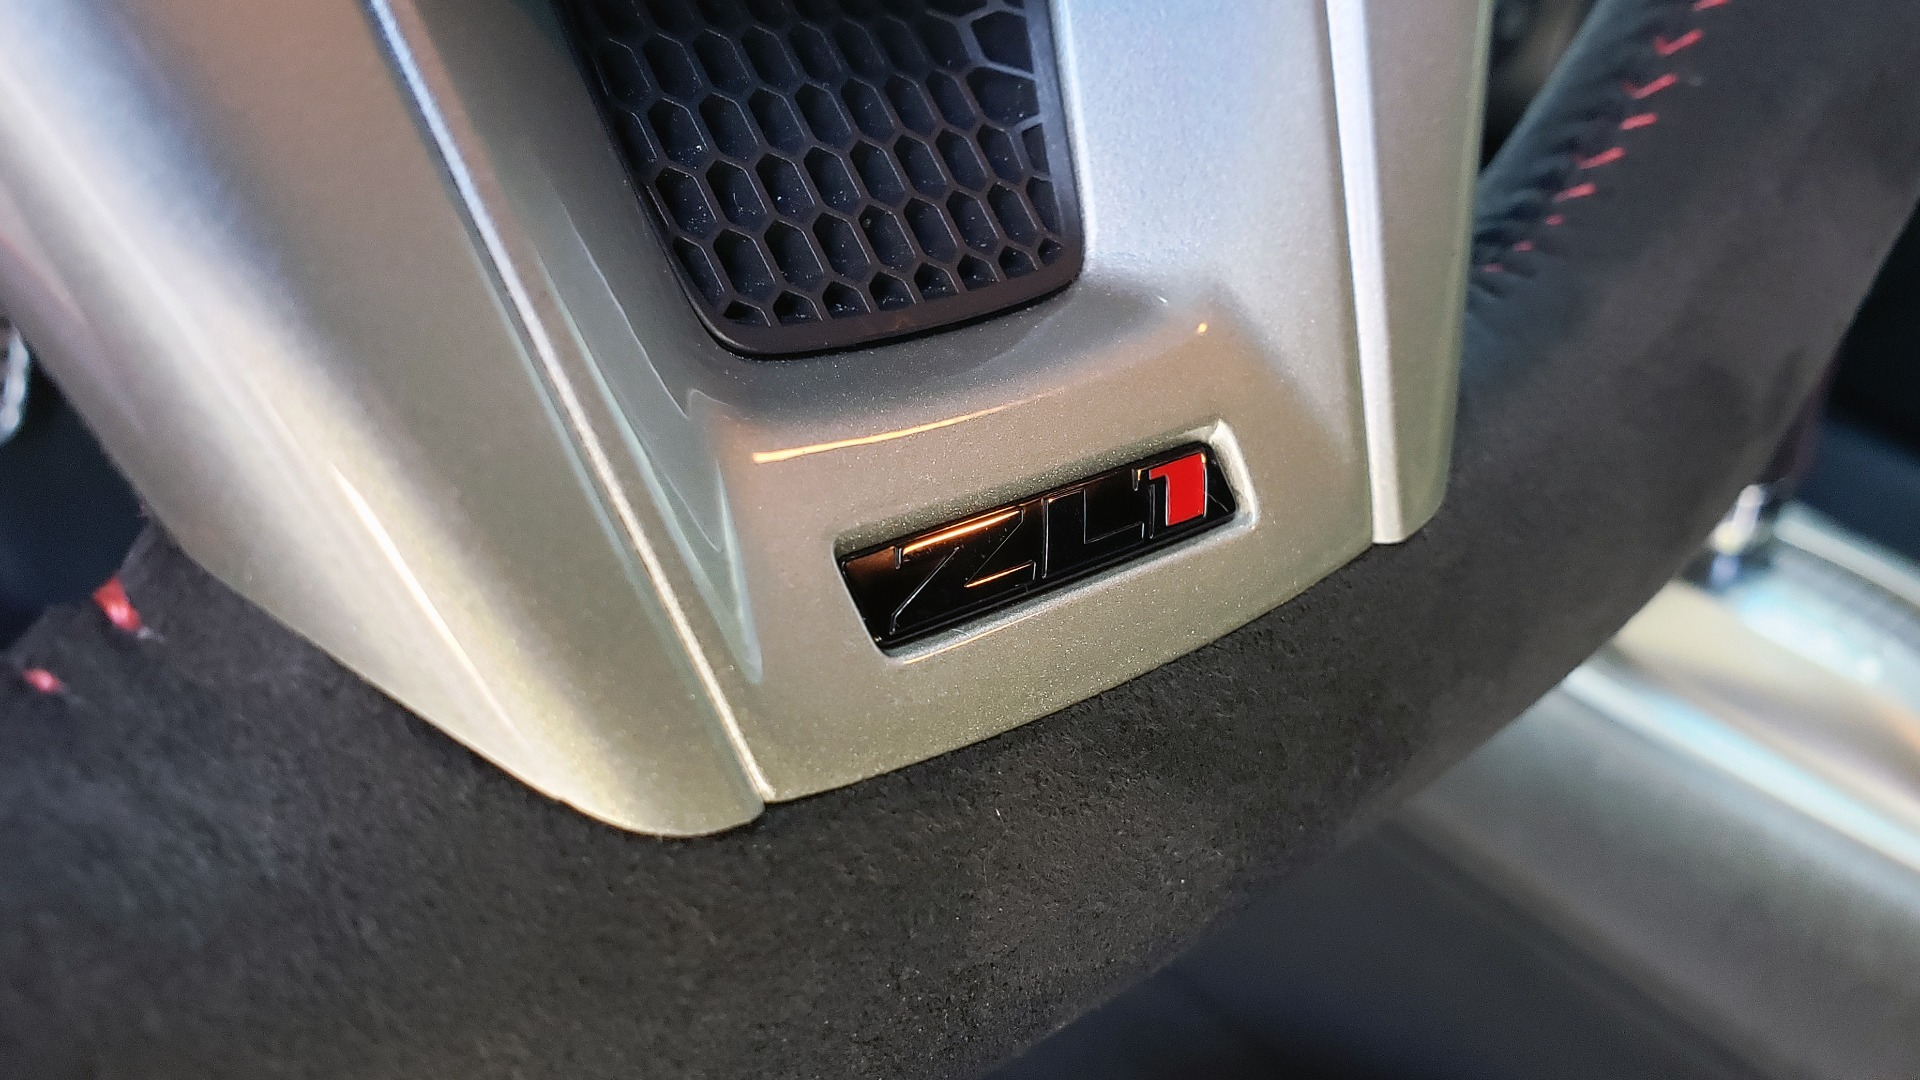 Used 2013 Chevrolet CAMARO ZL1 580HP / AUTO / NAV / BOSTON ACOUSTIC SND / REARVIEW for sale $40,995 at Formula Imports in Charlotte NC 28227 50